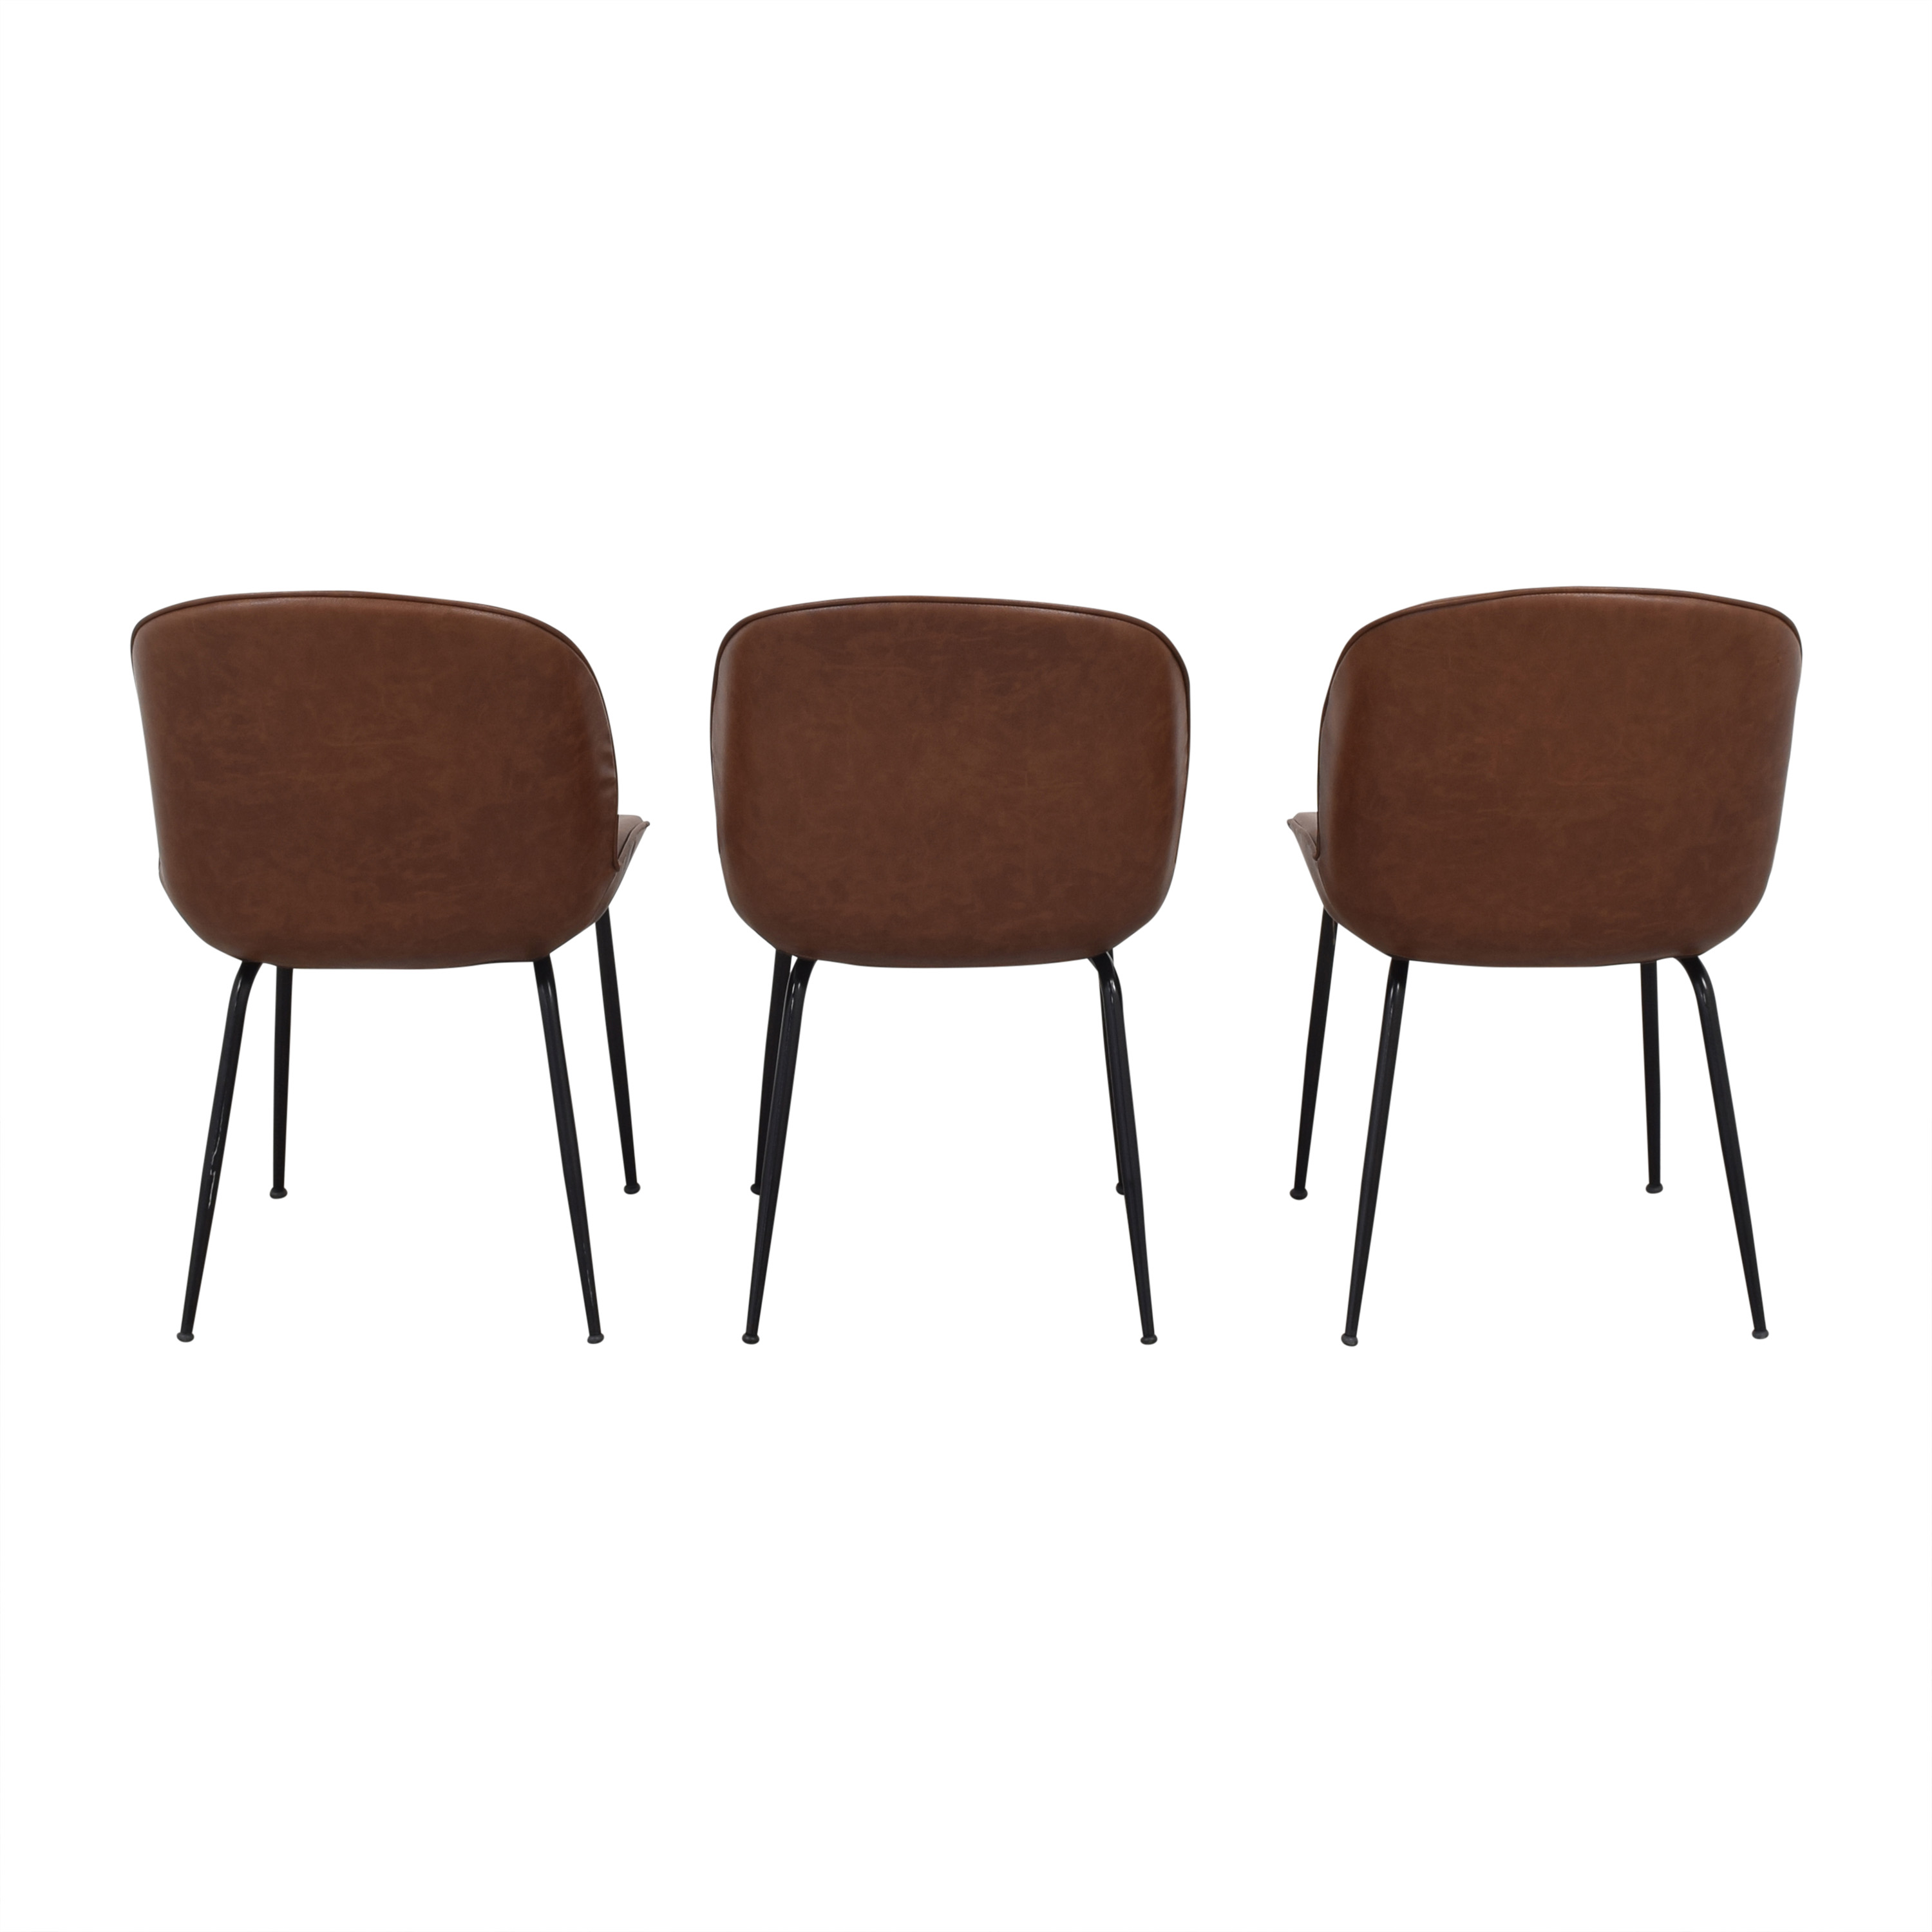 Upholstered Modern Dining Chairs ct